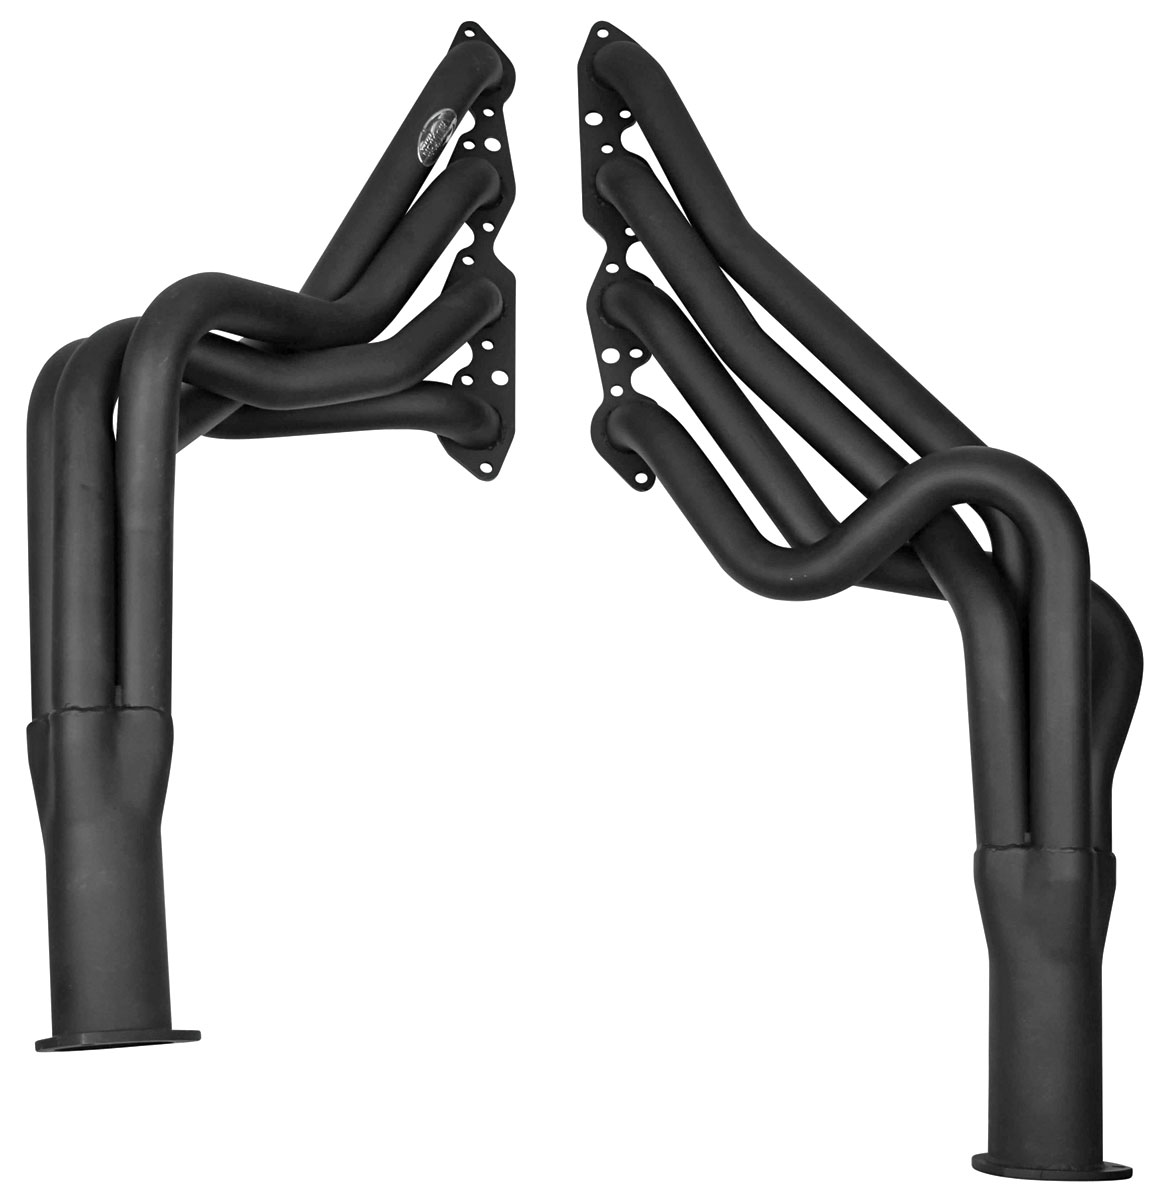 "Headers, Hooker Super Comp, 1968-74 Chevy A-Body BB 1-7/8"", Long-Tubed"